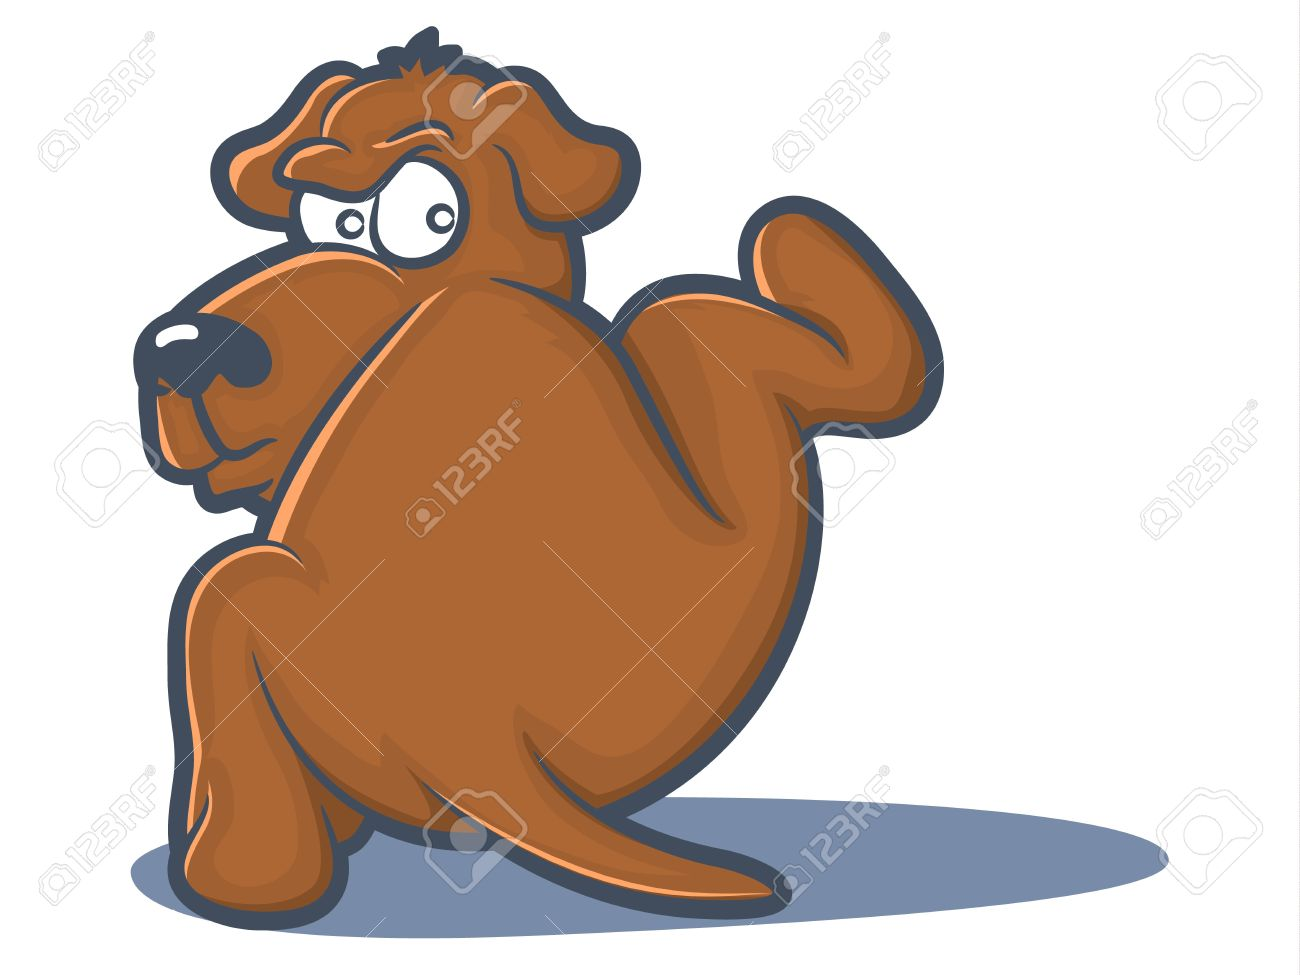 1300x975 Dog Lifting His Leg To Pee Royalty Free Cliparts, Vectors,